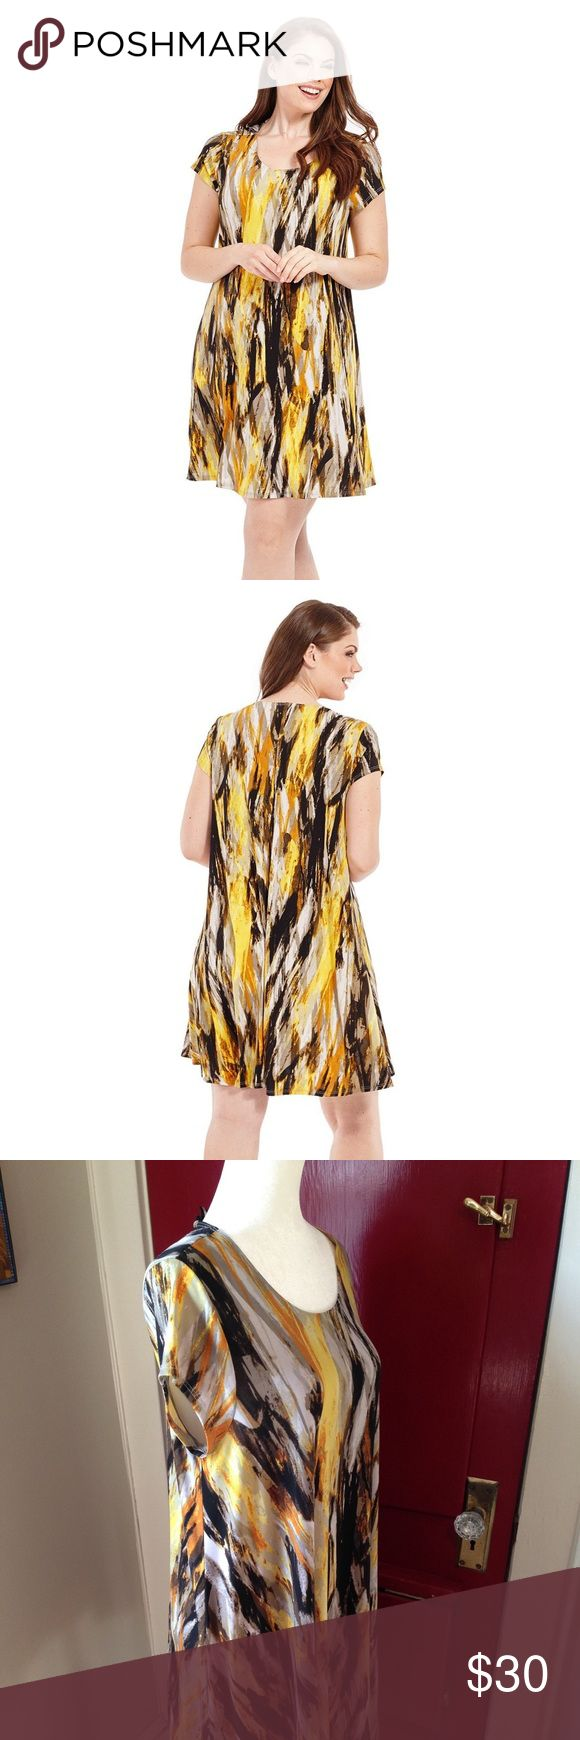 KAREN KANE Brushed Yellow Trapeze Dress KAREN KANE  trapeze dress with flattering silhouette.   Beautiful print  Stretch-jersey fabric  Slip on design Karen Kane Dresses